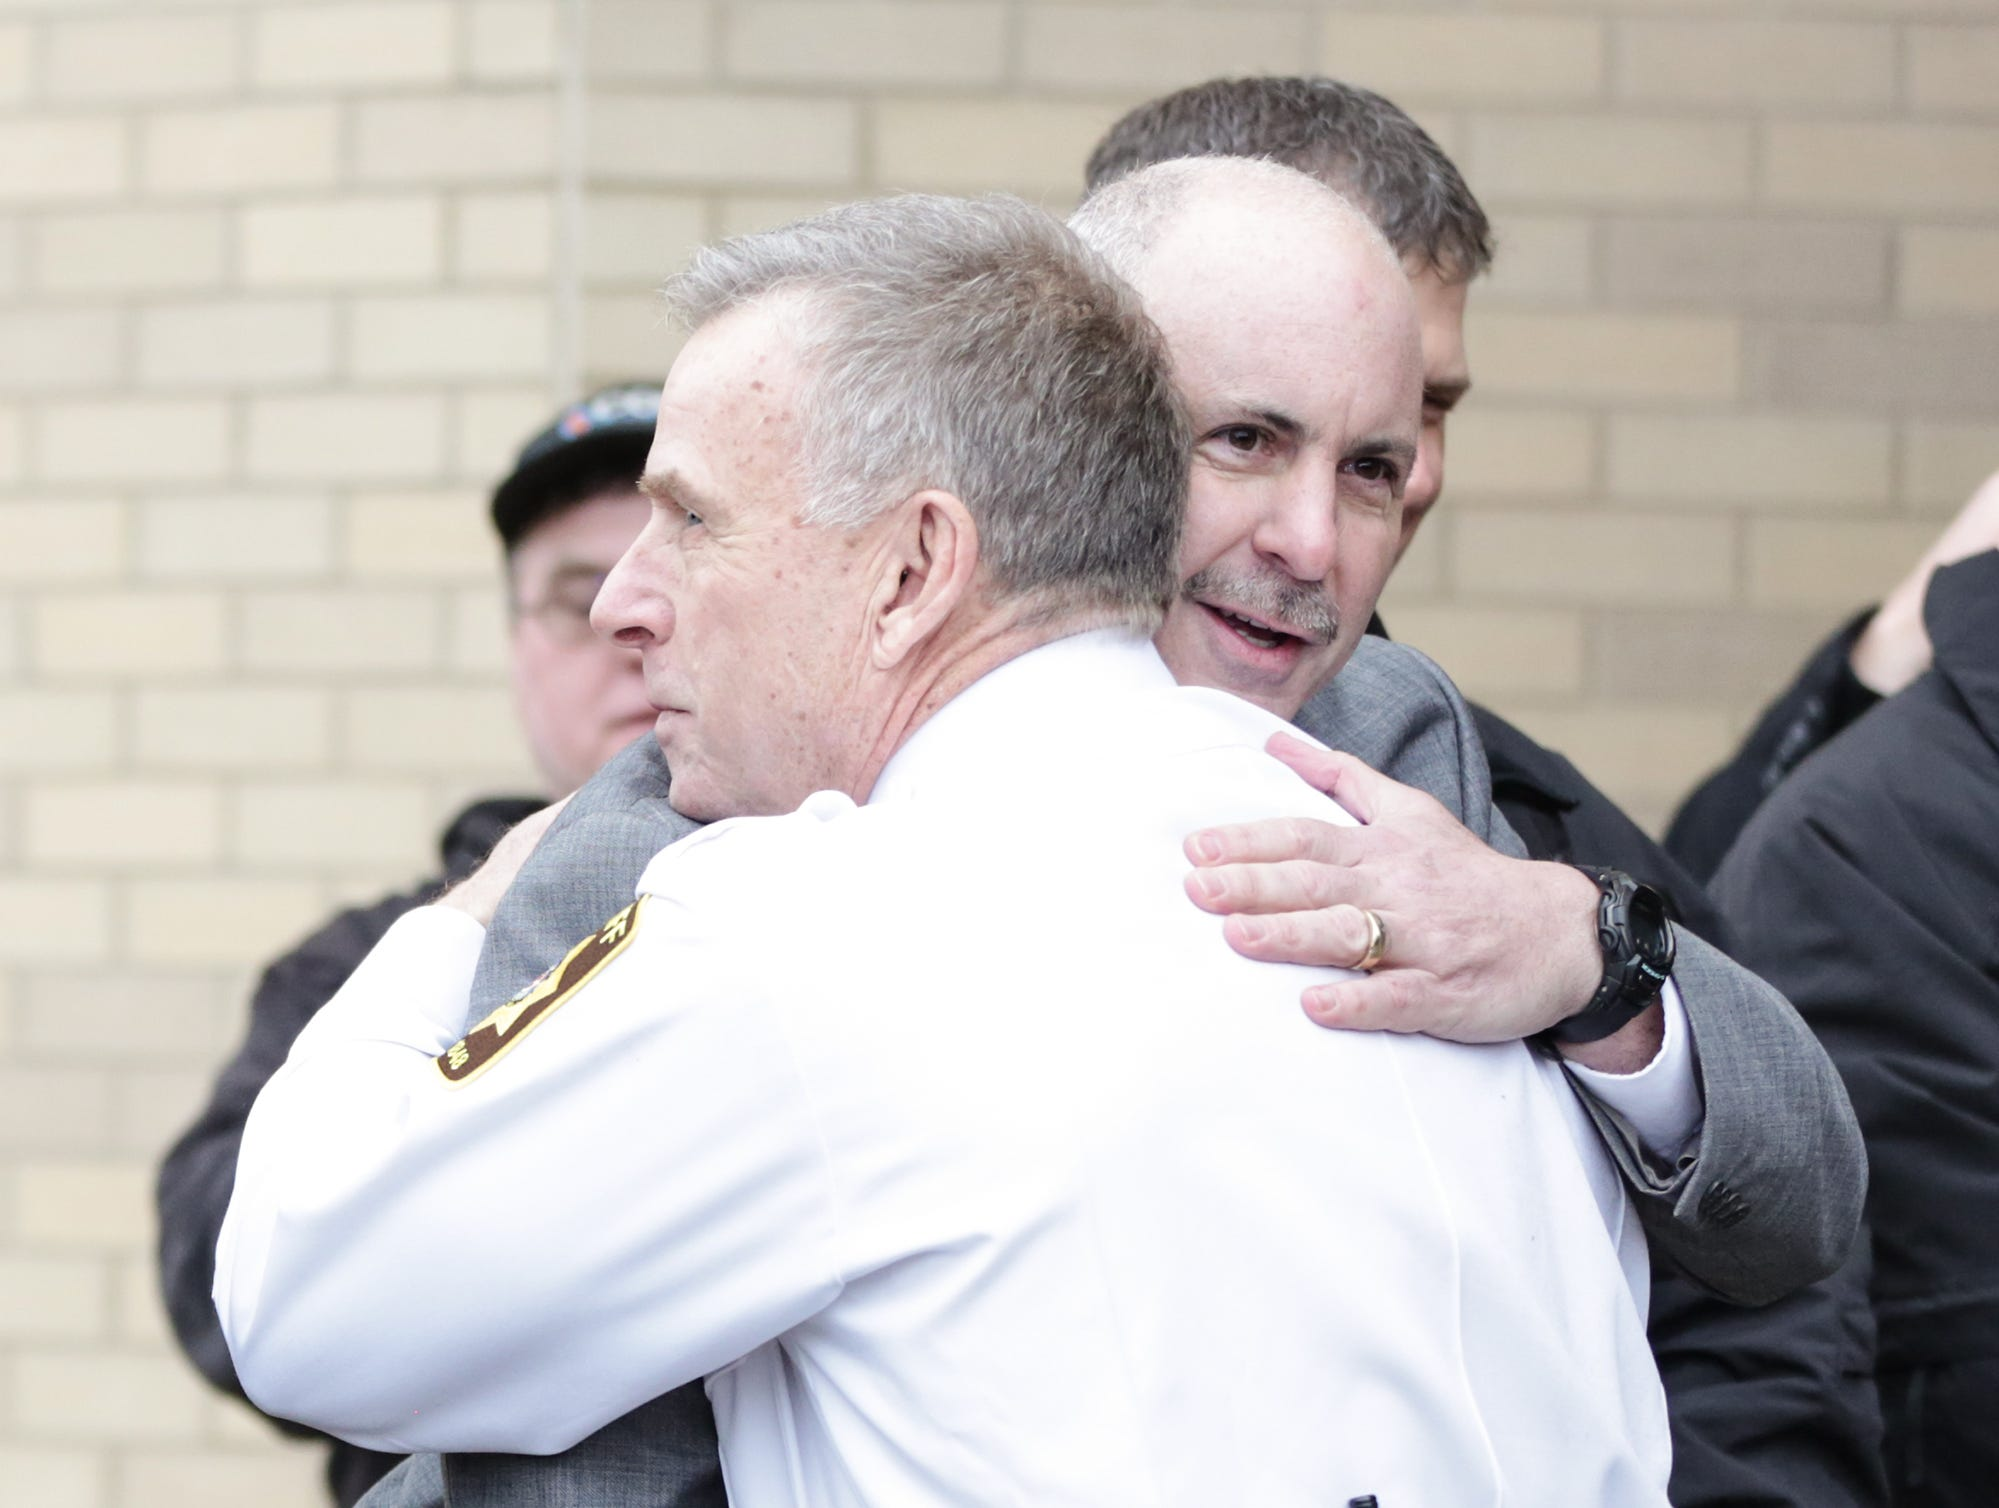 Retiring Fond du Lac County Sheriff Mick Fink hugs Fond du Lac County Sheriff's Office Detective Nate LaMotte Monday, January 7, 2019 during Fink's ramp walk which is a department tradition for retiring personel. Fink retired from the position of Fond du Lac County Sheriff after serving for 12 years. Submitted by Roxanne Abler/USA TODAY NETWORK-Wisconsin